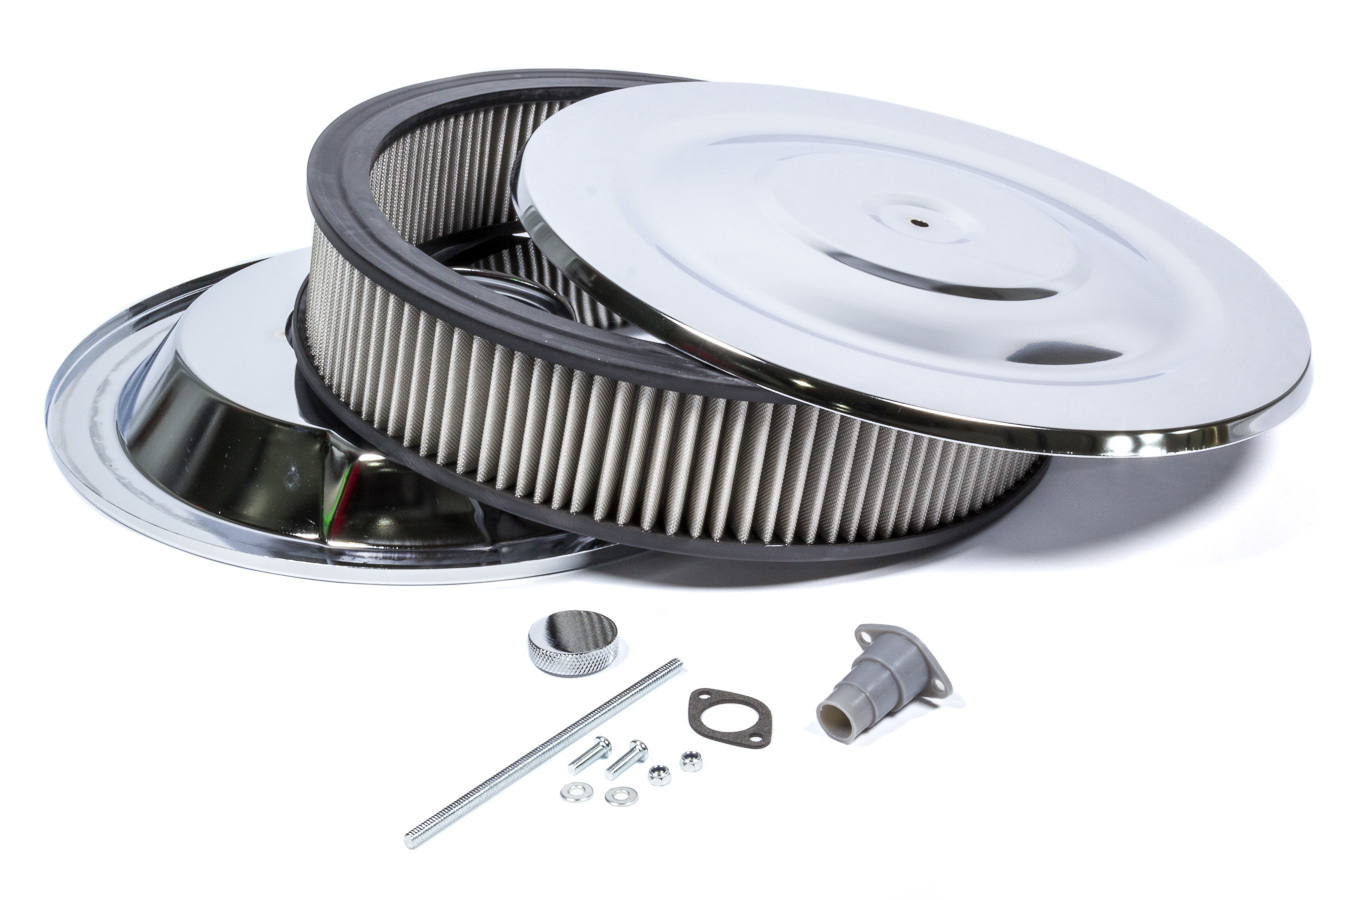 Mr Gasket 1410G Air Cleaner Assembly, Easy Flow, 14 in Round, 3 in Tall, 5-1/8 in Carb Flange, Drop Base, Steel, Chrome, Kit